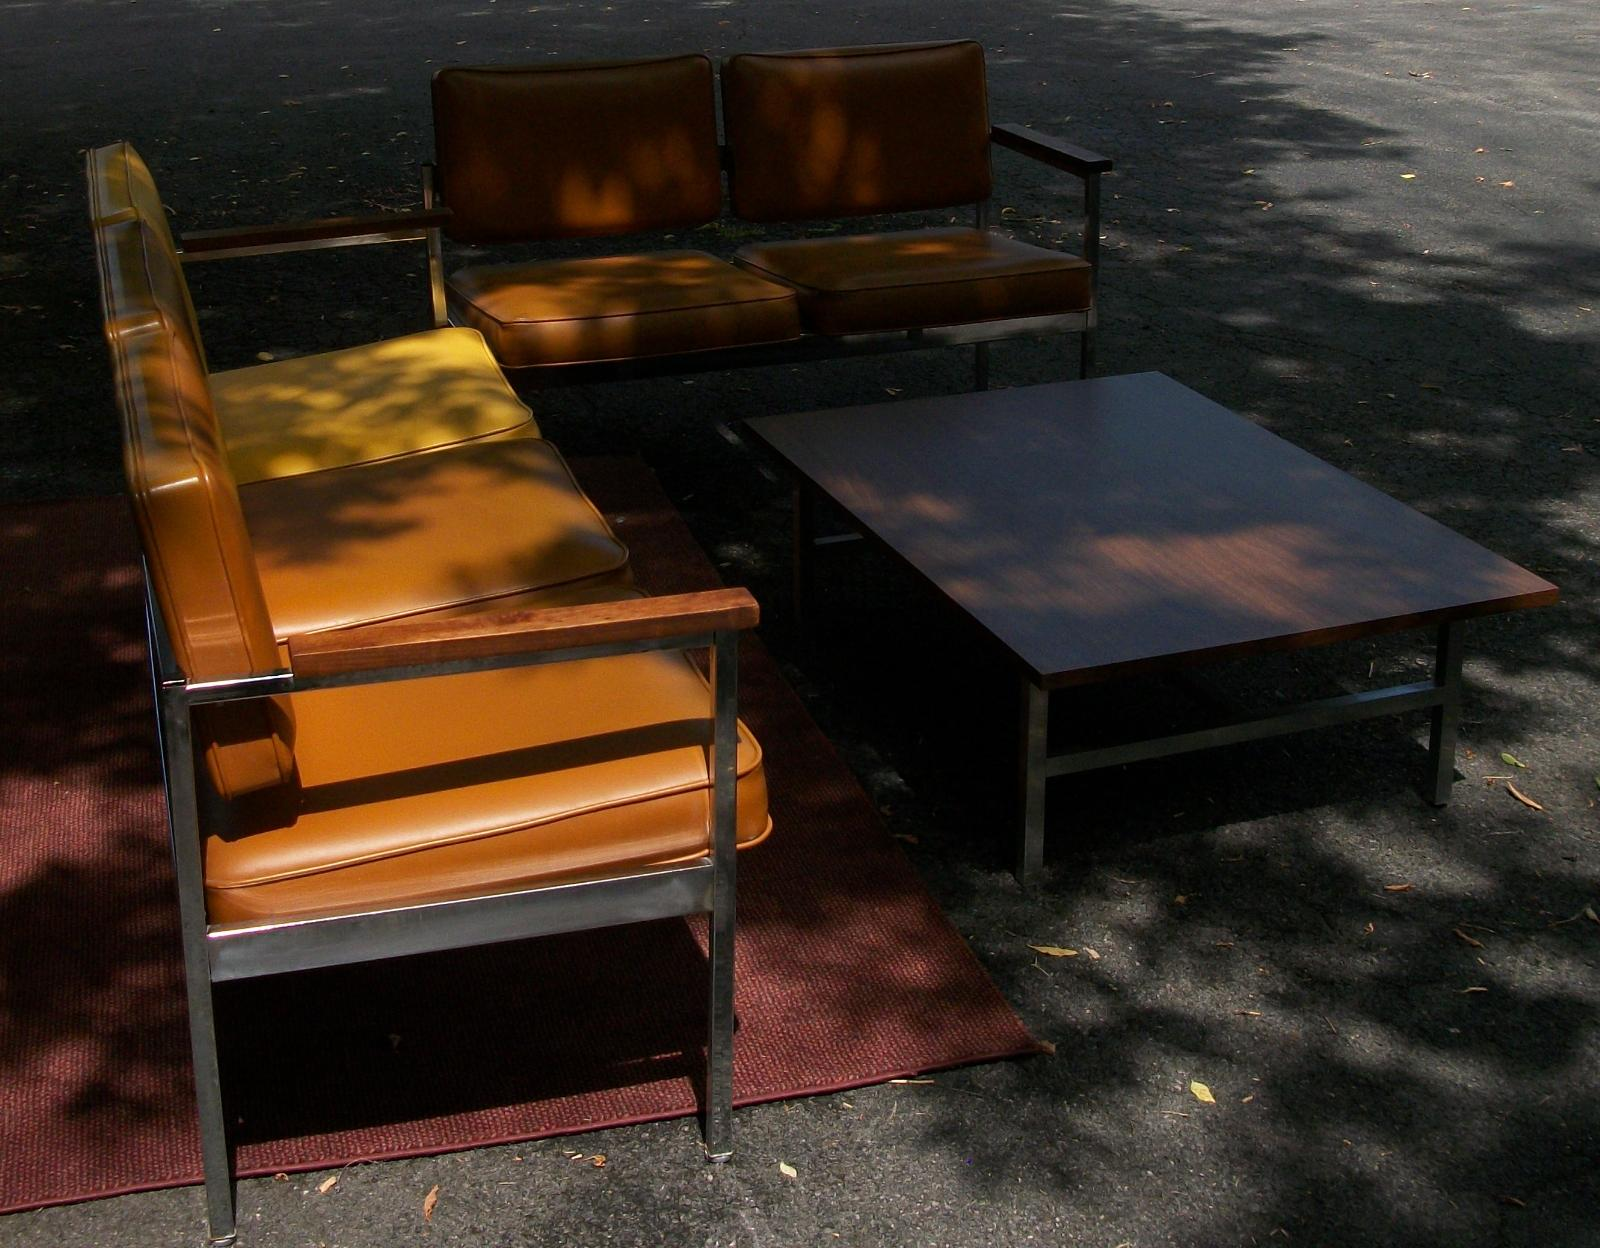 United Chair Company Division Of U.S. Industries, Inc. The Table And  Couches Are In Excellent Condition. The Table Measures: